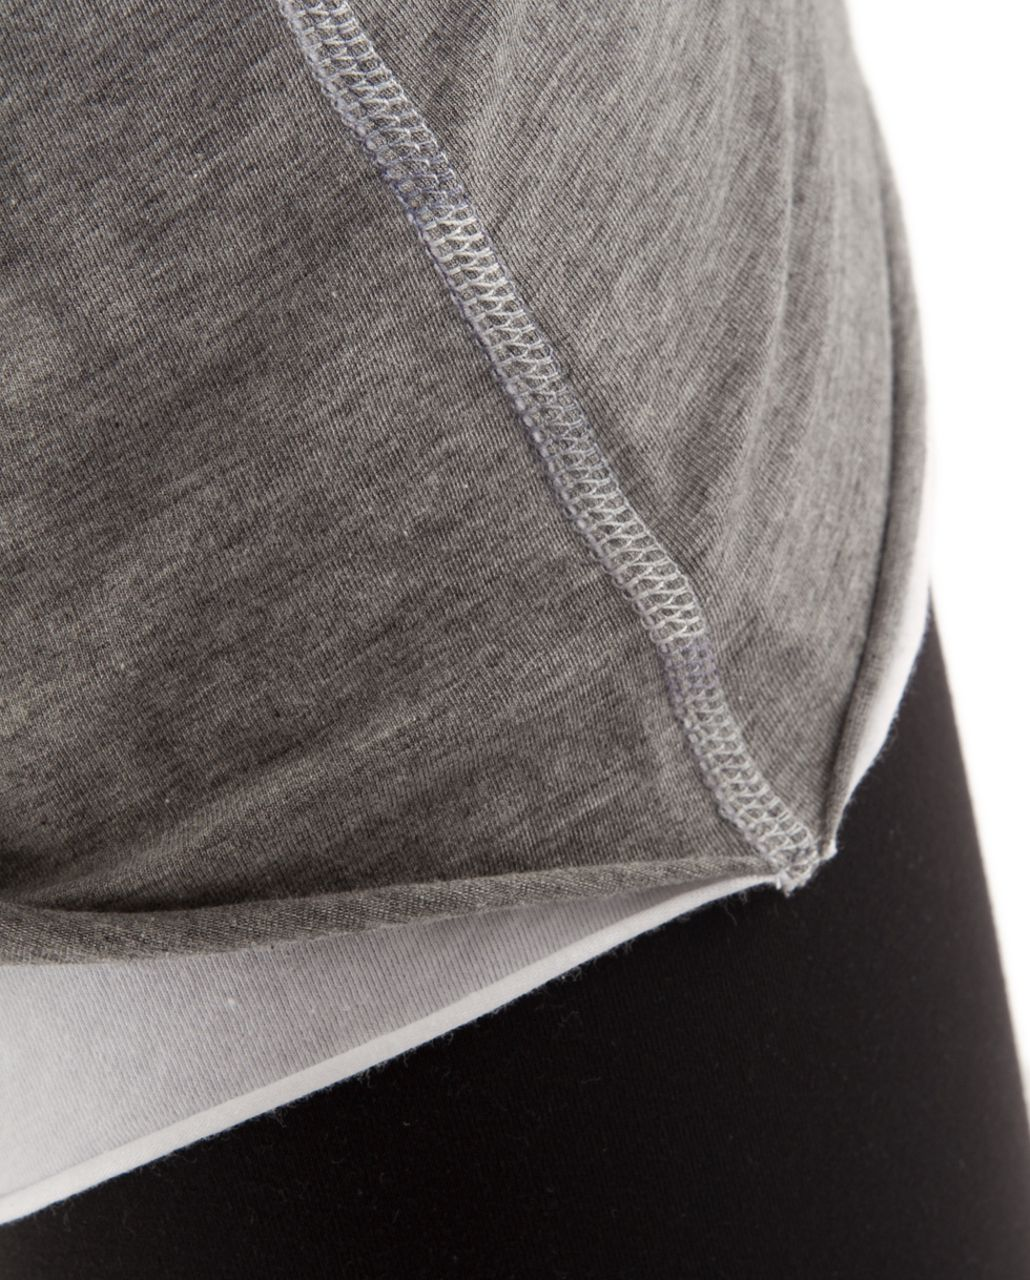 Lululemon Cabin Long Sleeve Tee II - Heathered Blurred Grey /  White